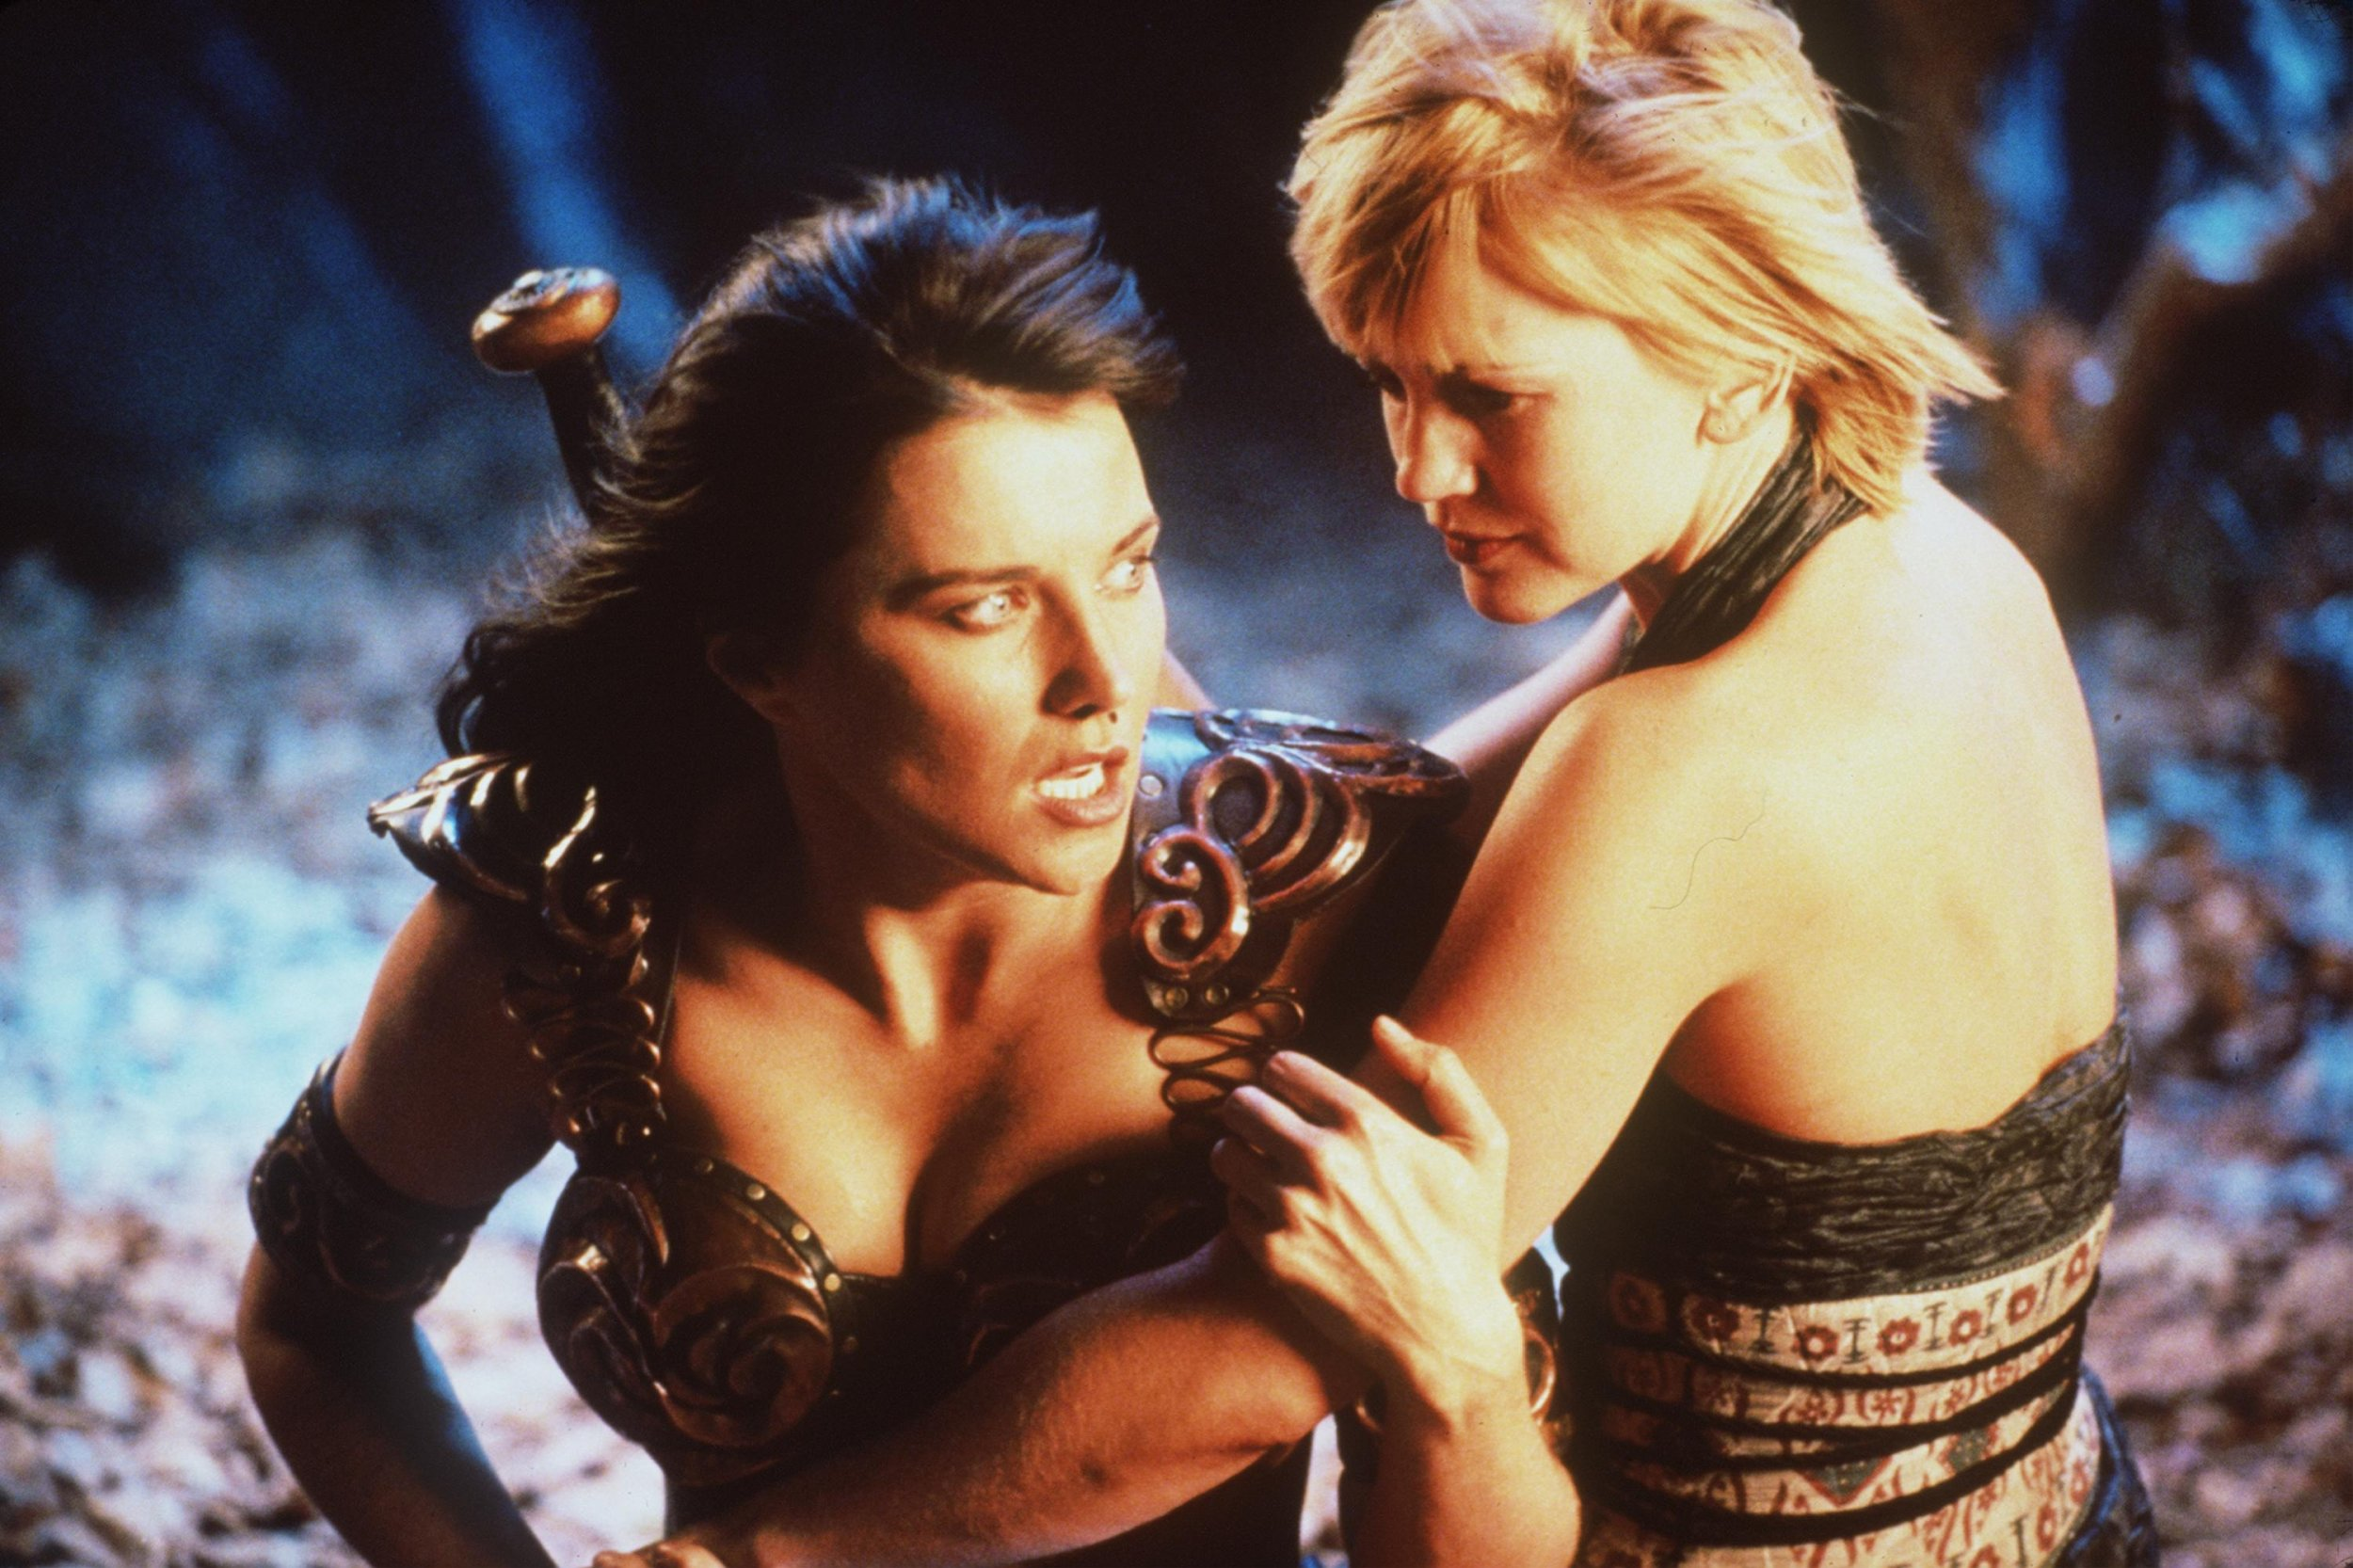 Xena: Warrior Princess - Xena and Gabrielle